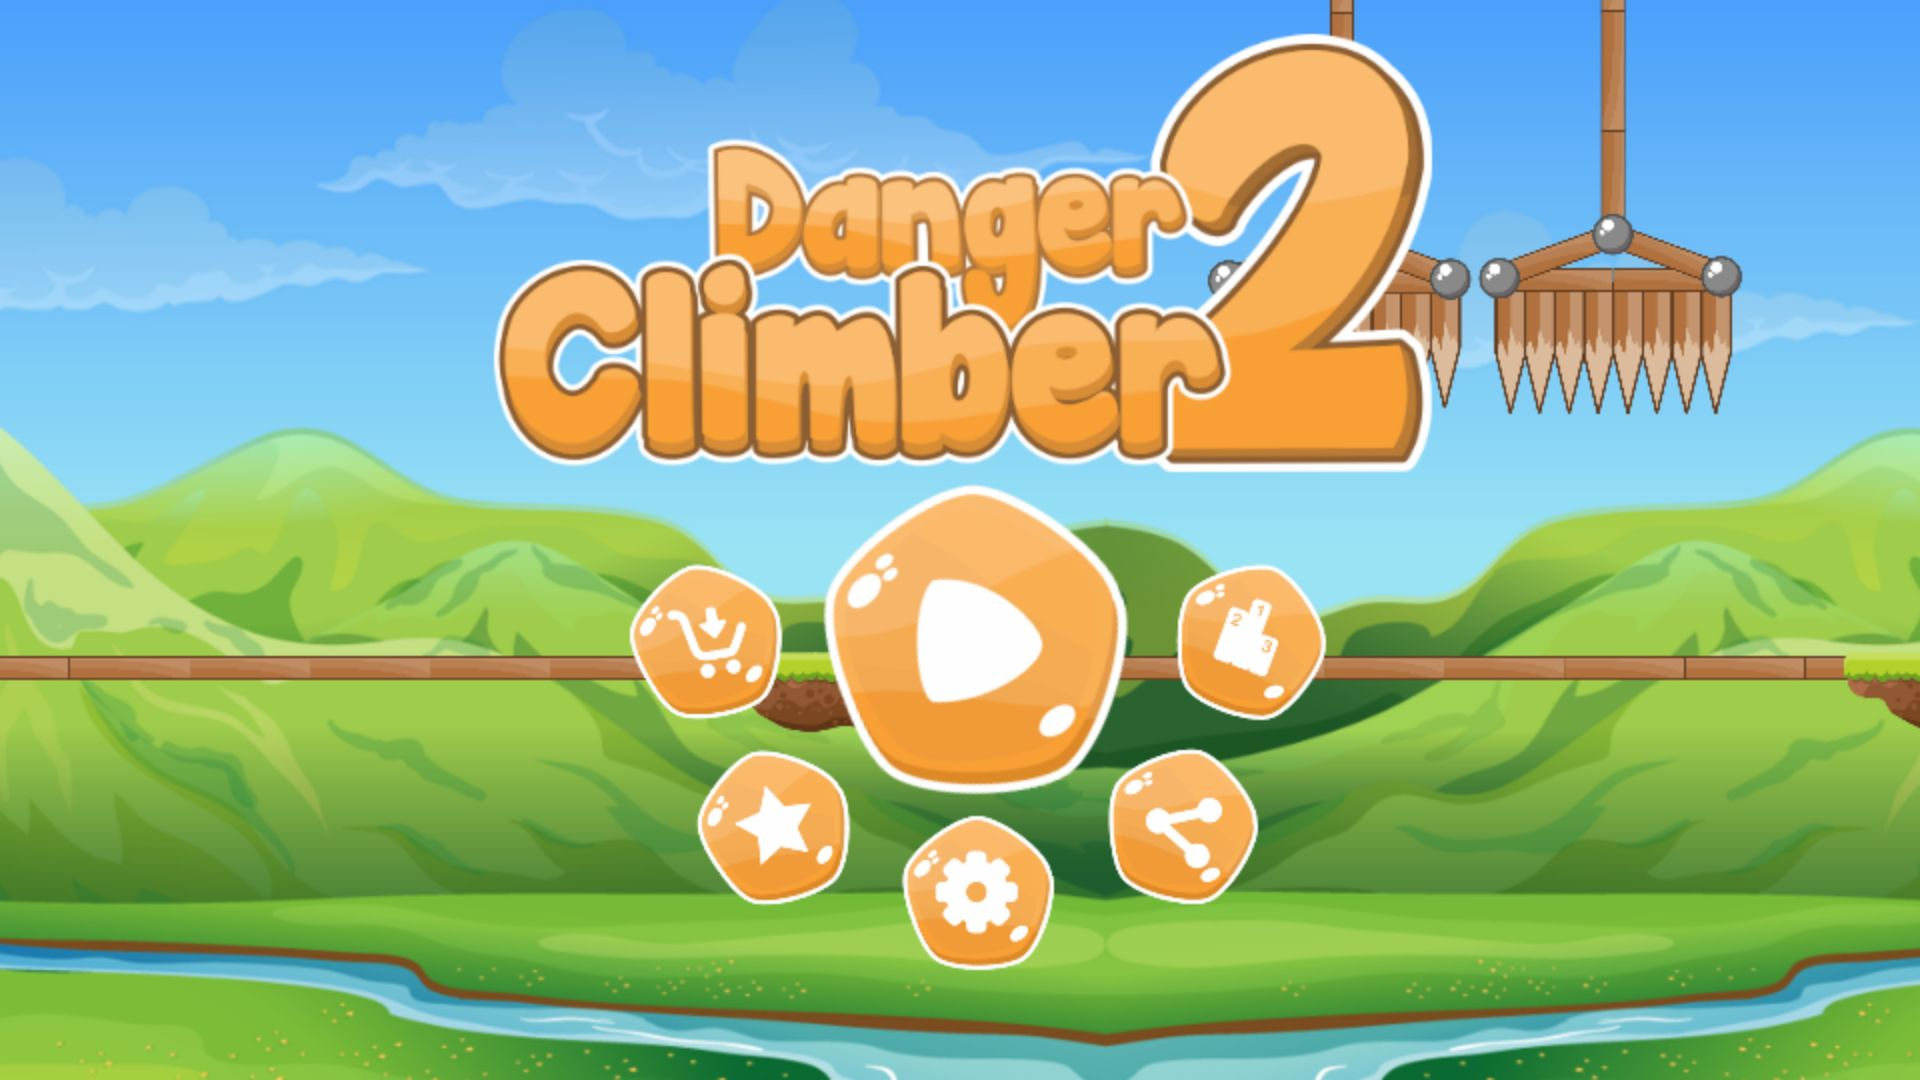 Danger Climber 2 - Android Game Source Code Screenshot 1